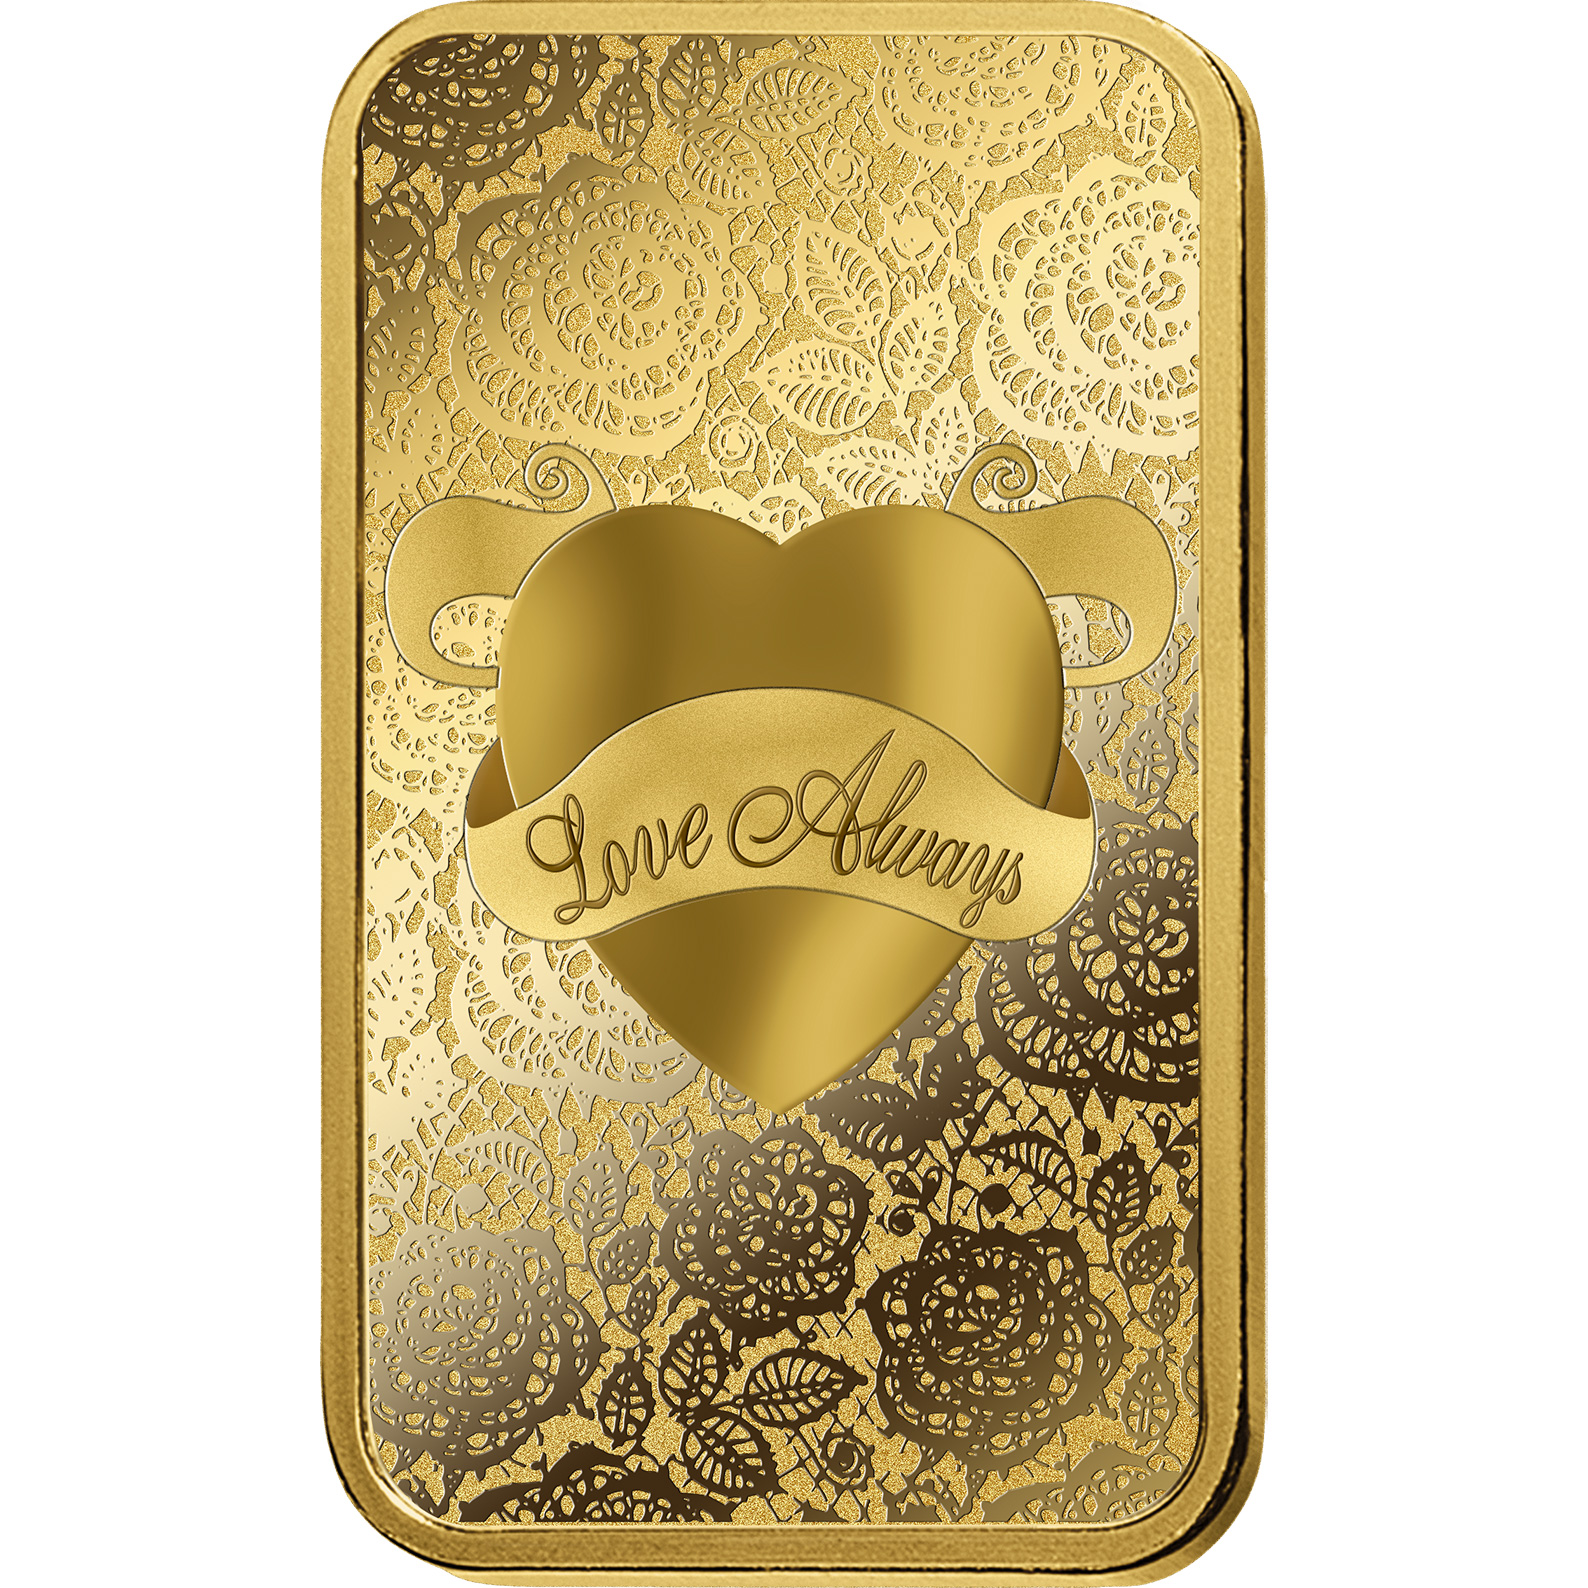 10 grammes lingotin d'or pur 999.9 - PAMP Suisse Love Always